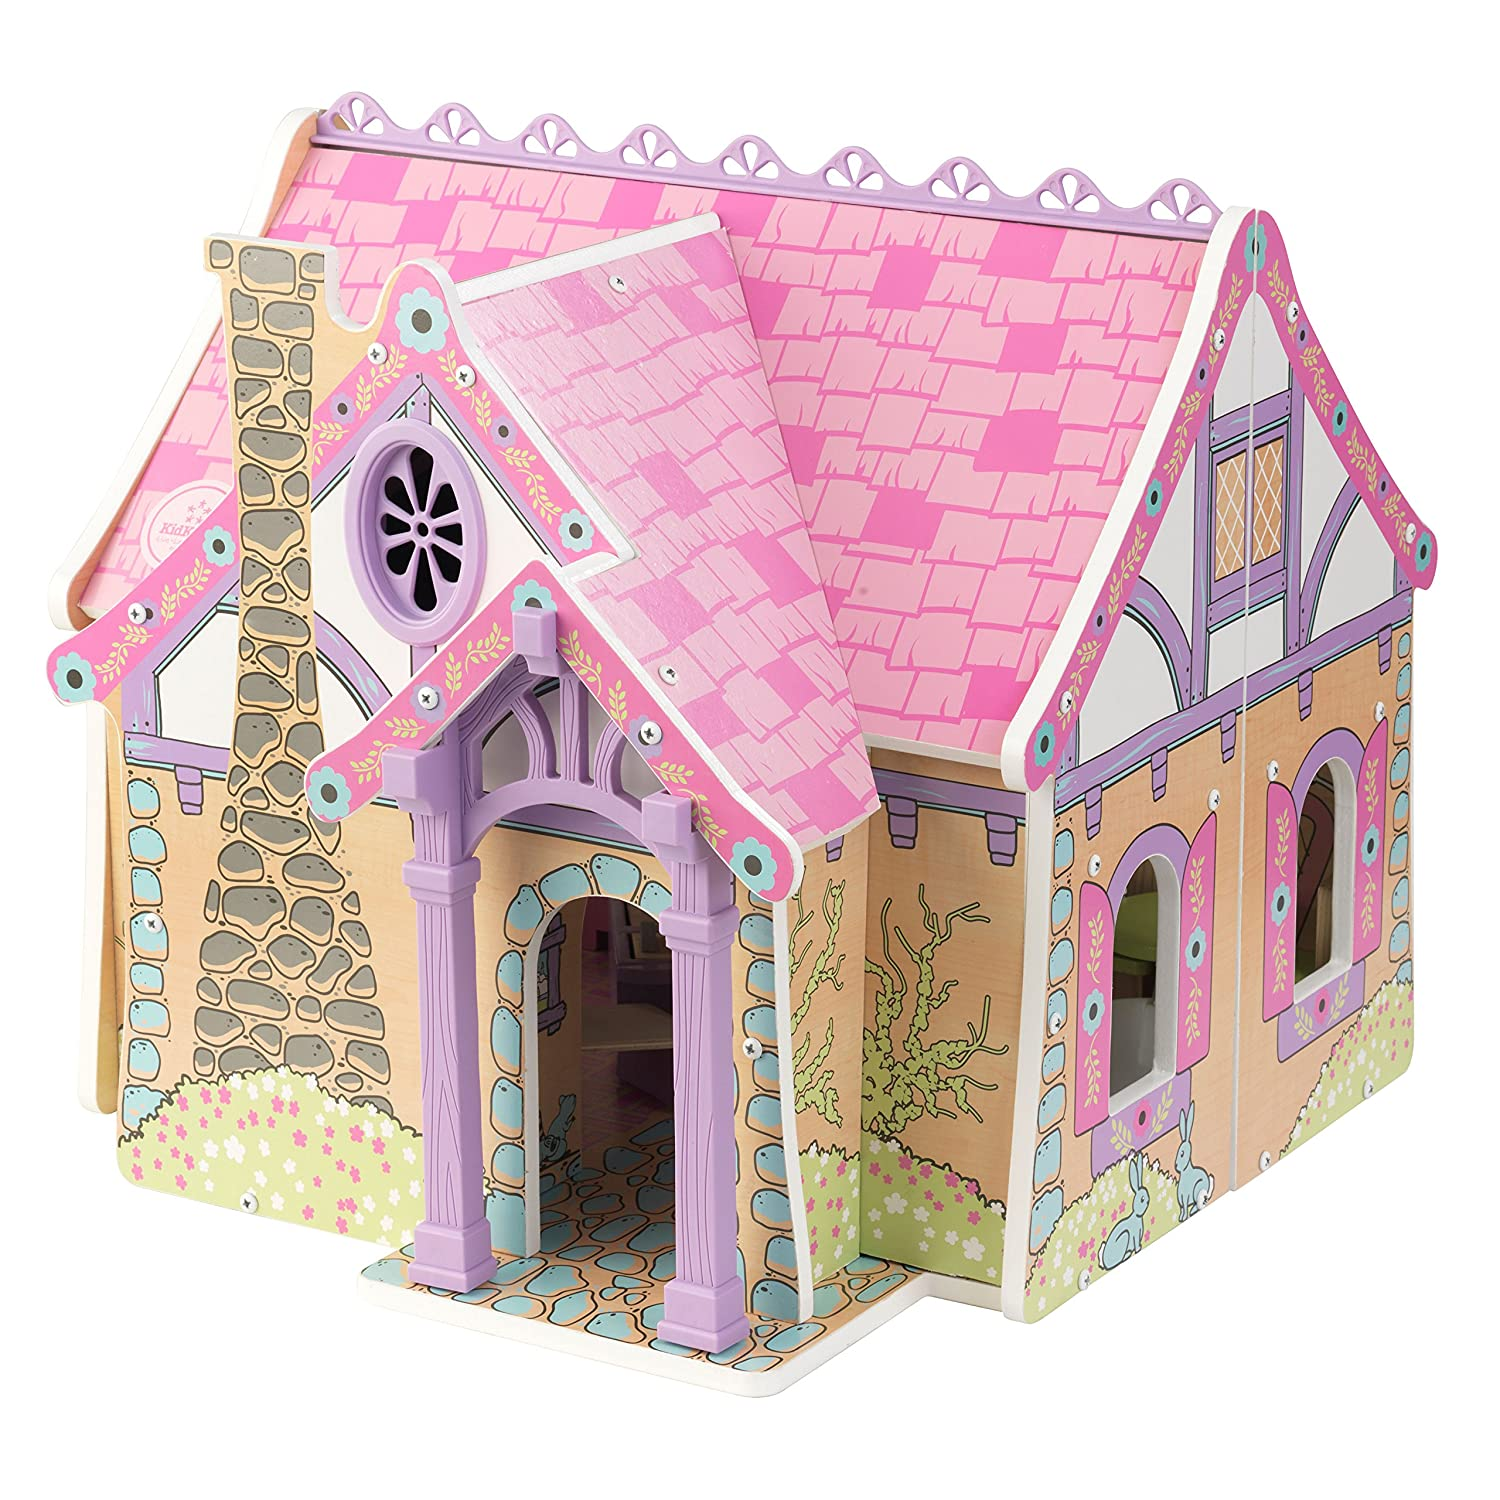 Amazon.com: KidKraft Enchanted Forest Dollhouse Doll: Toys & Games